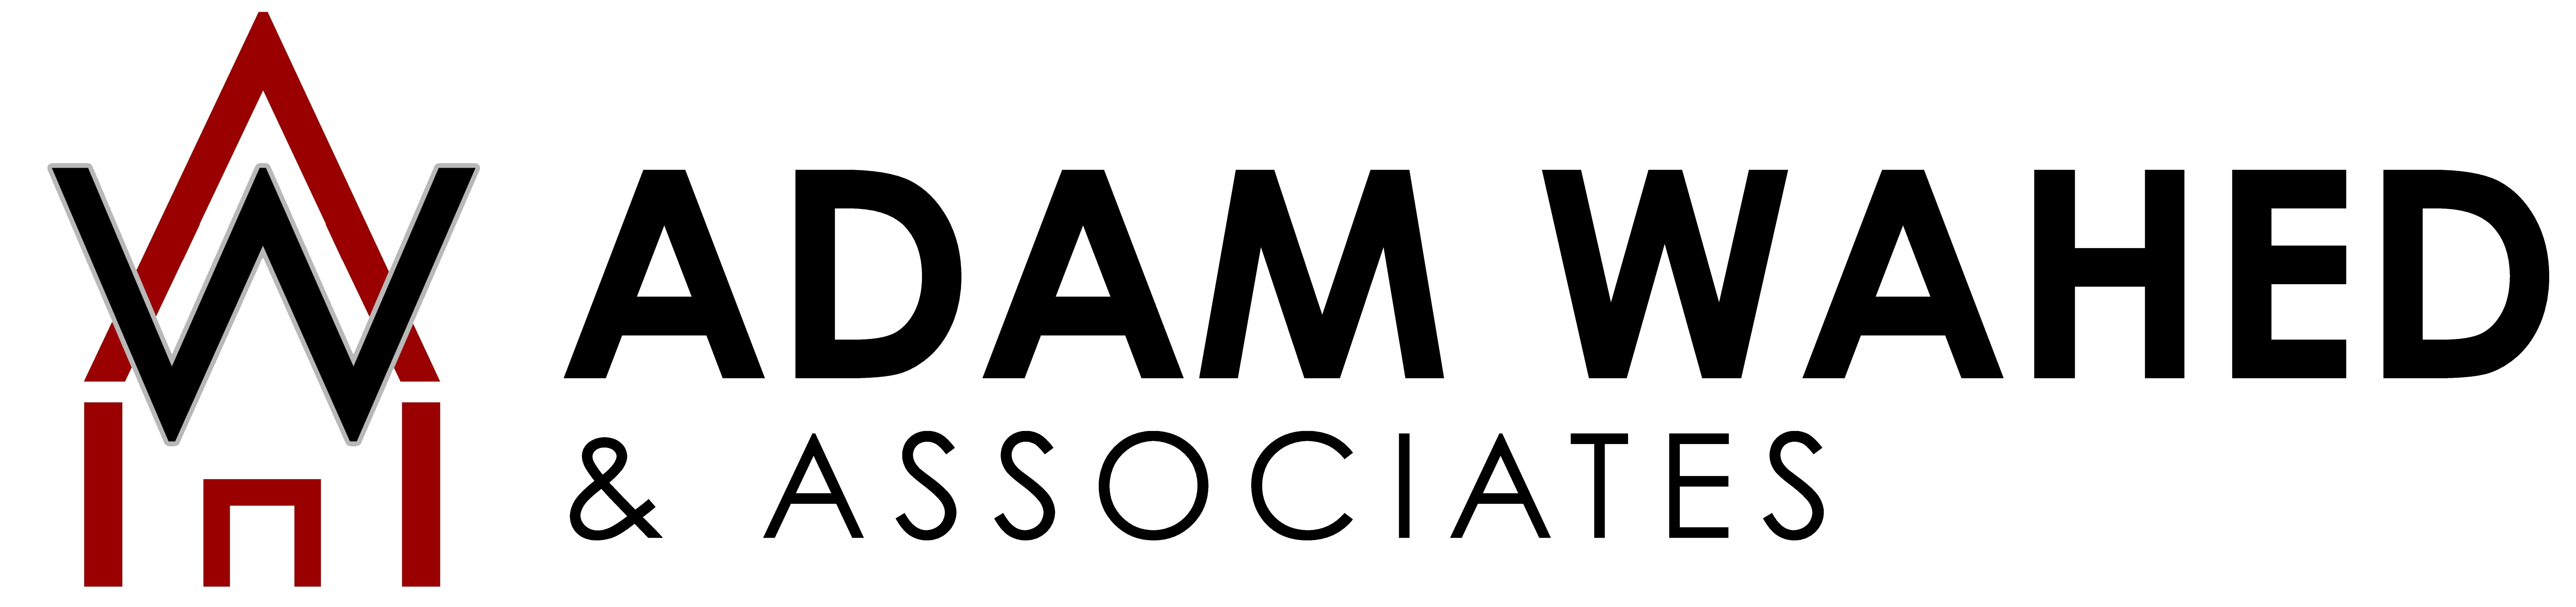 Adam Wahed and Associates